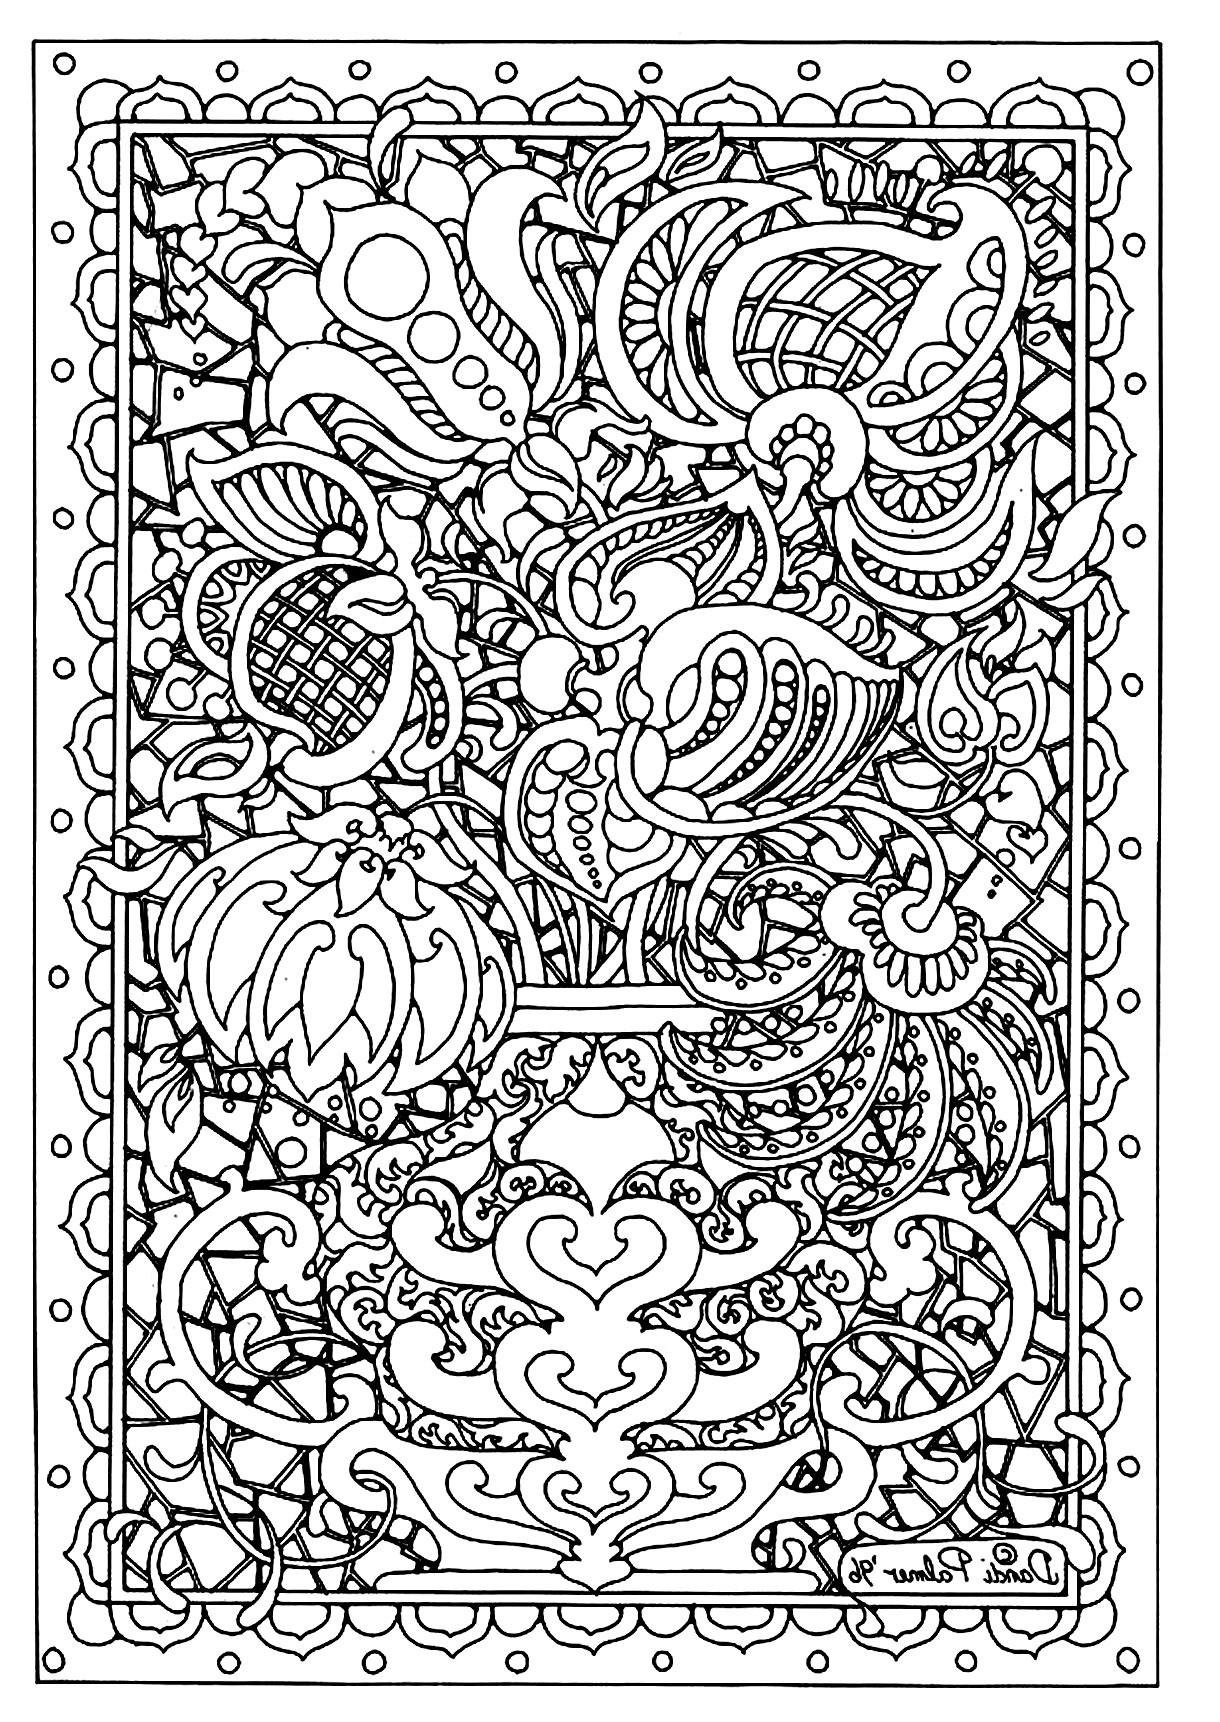 coloring adults pages flower difficult flowers adult coloring pages coloring pages adults